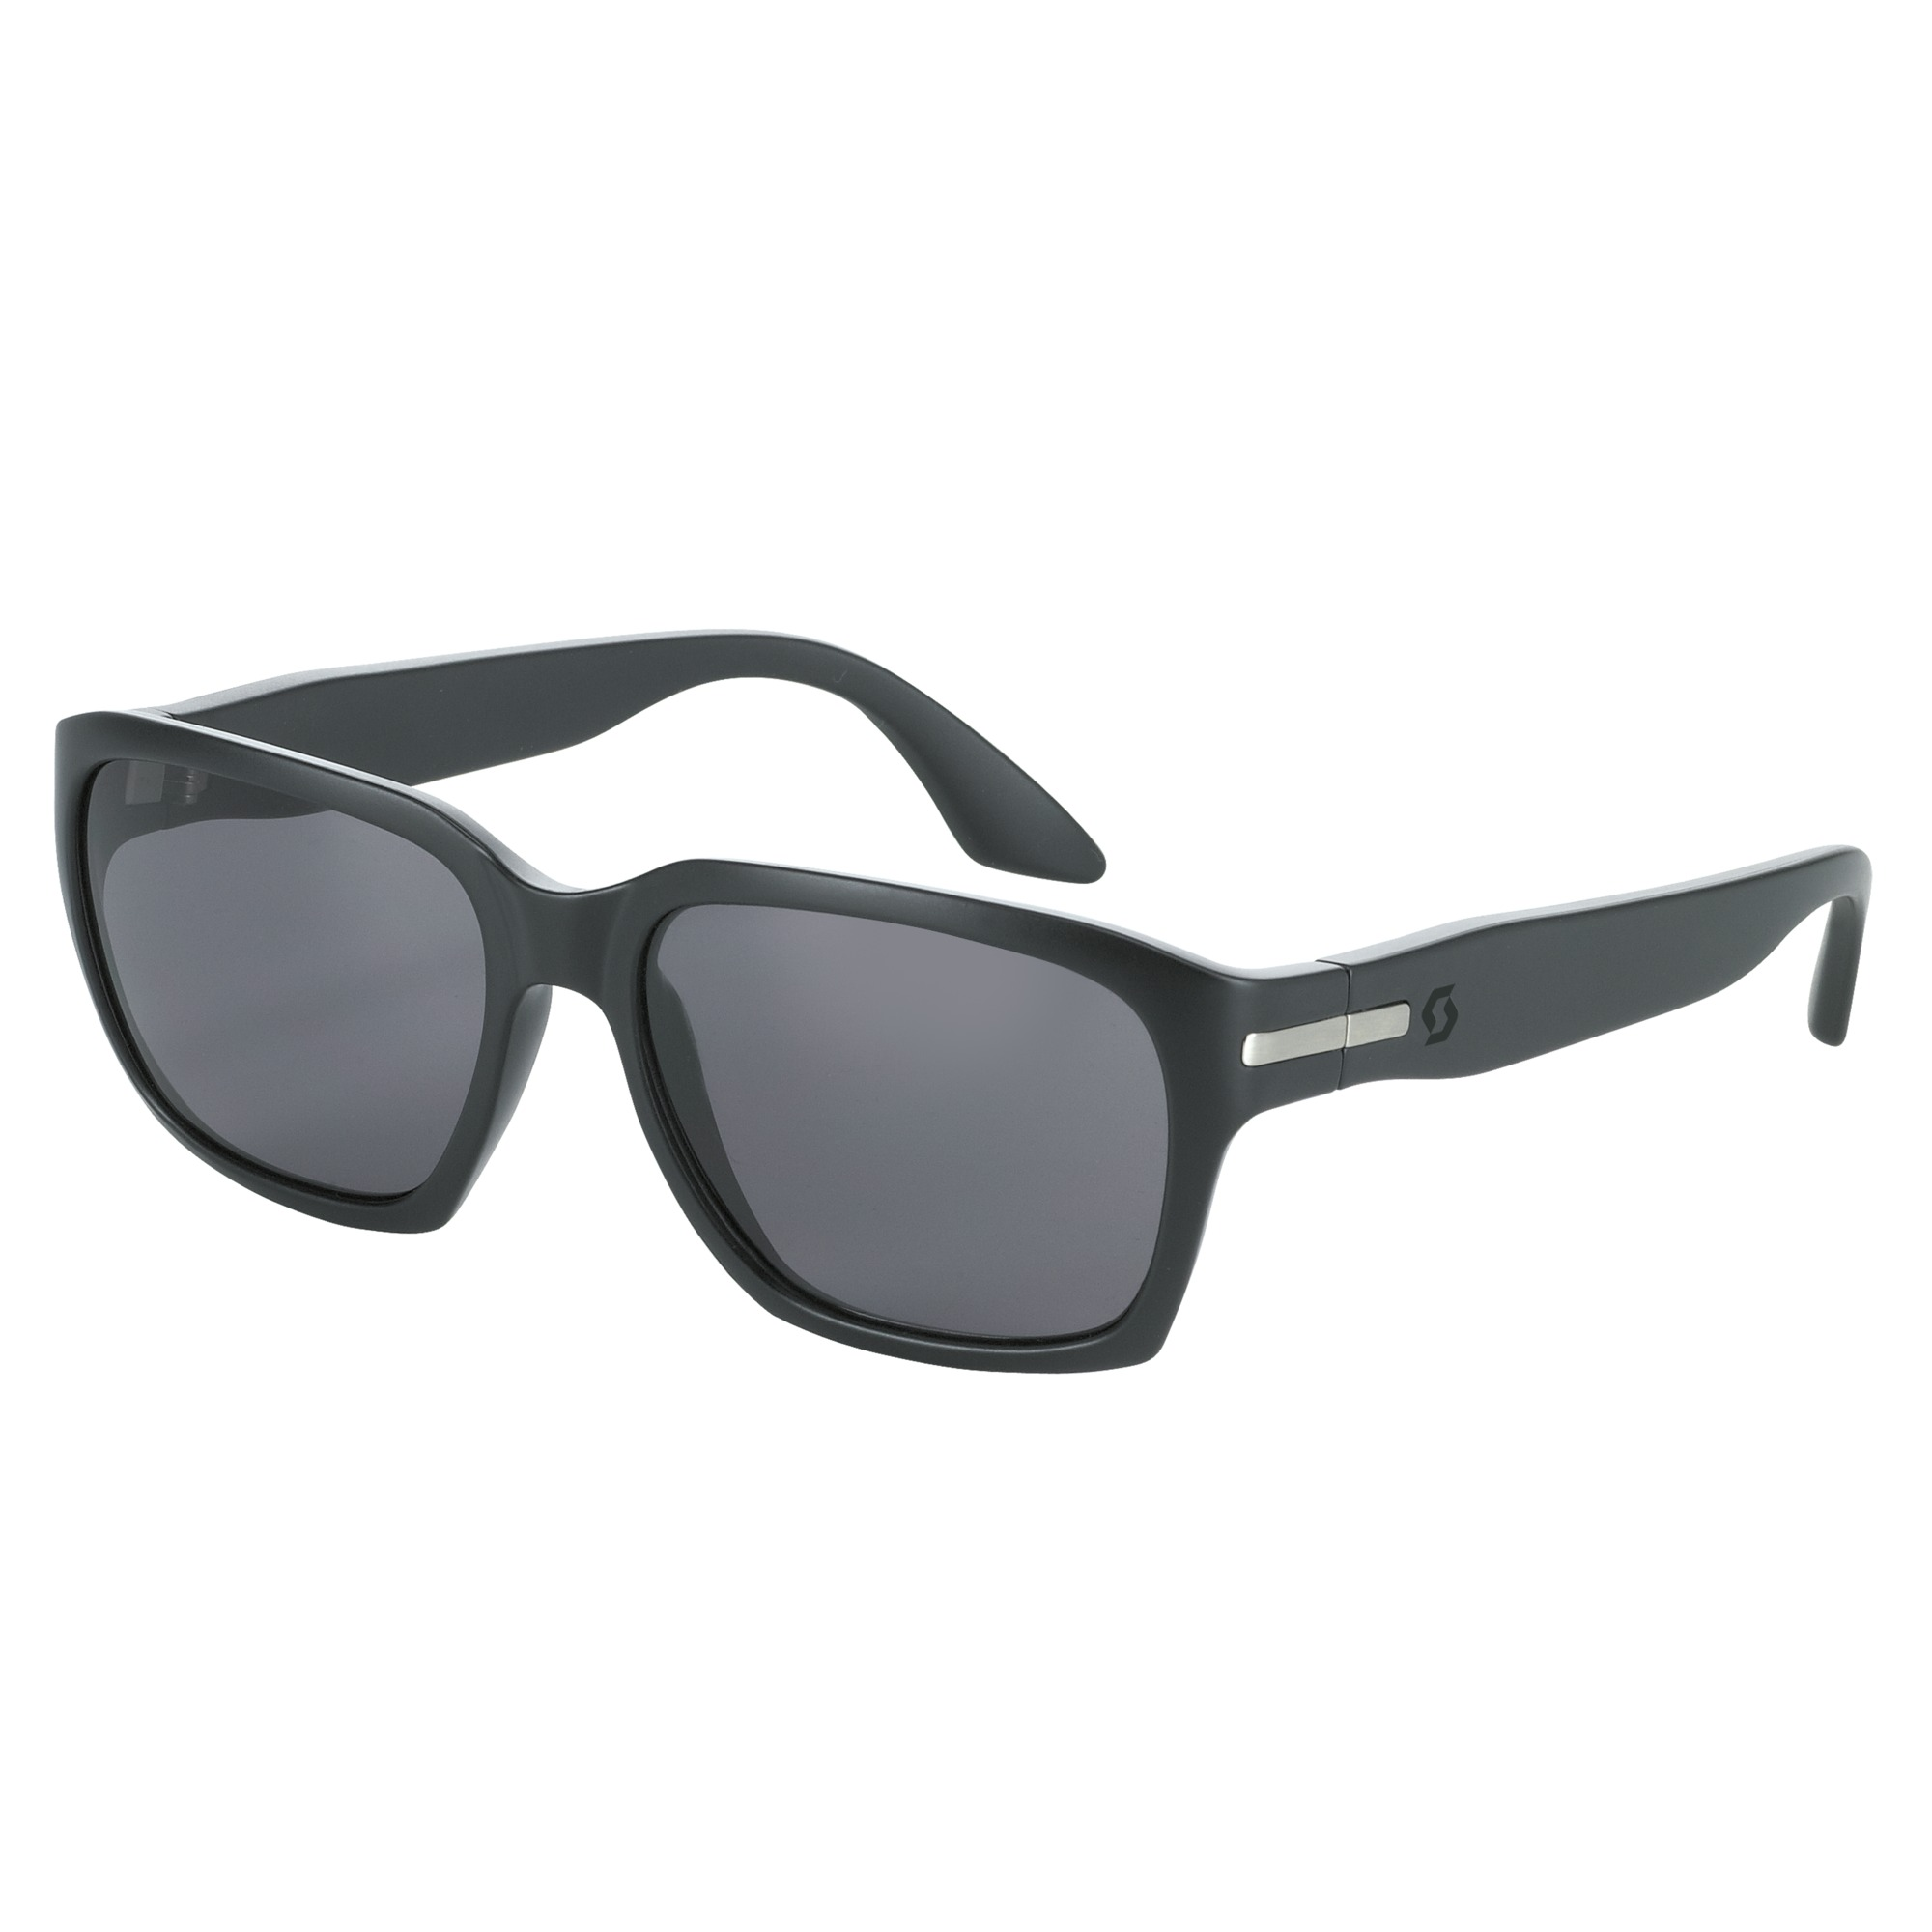 OCCHIALE SPORTIVO SCOTT C-NOTE SUNGLASSES 239321 BLACK MATT GREY.jpg